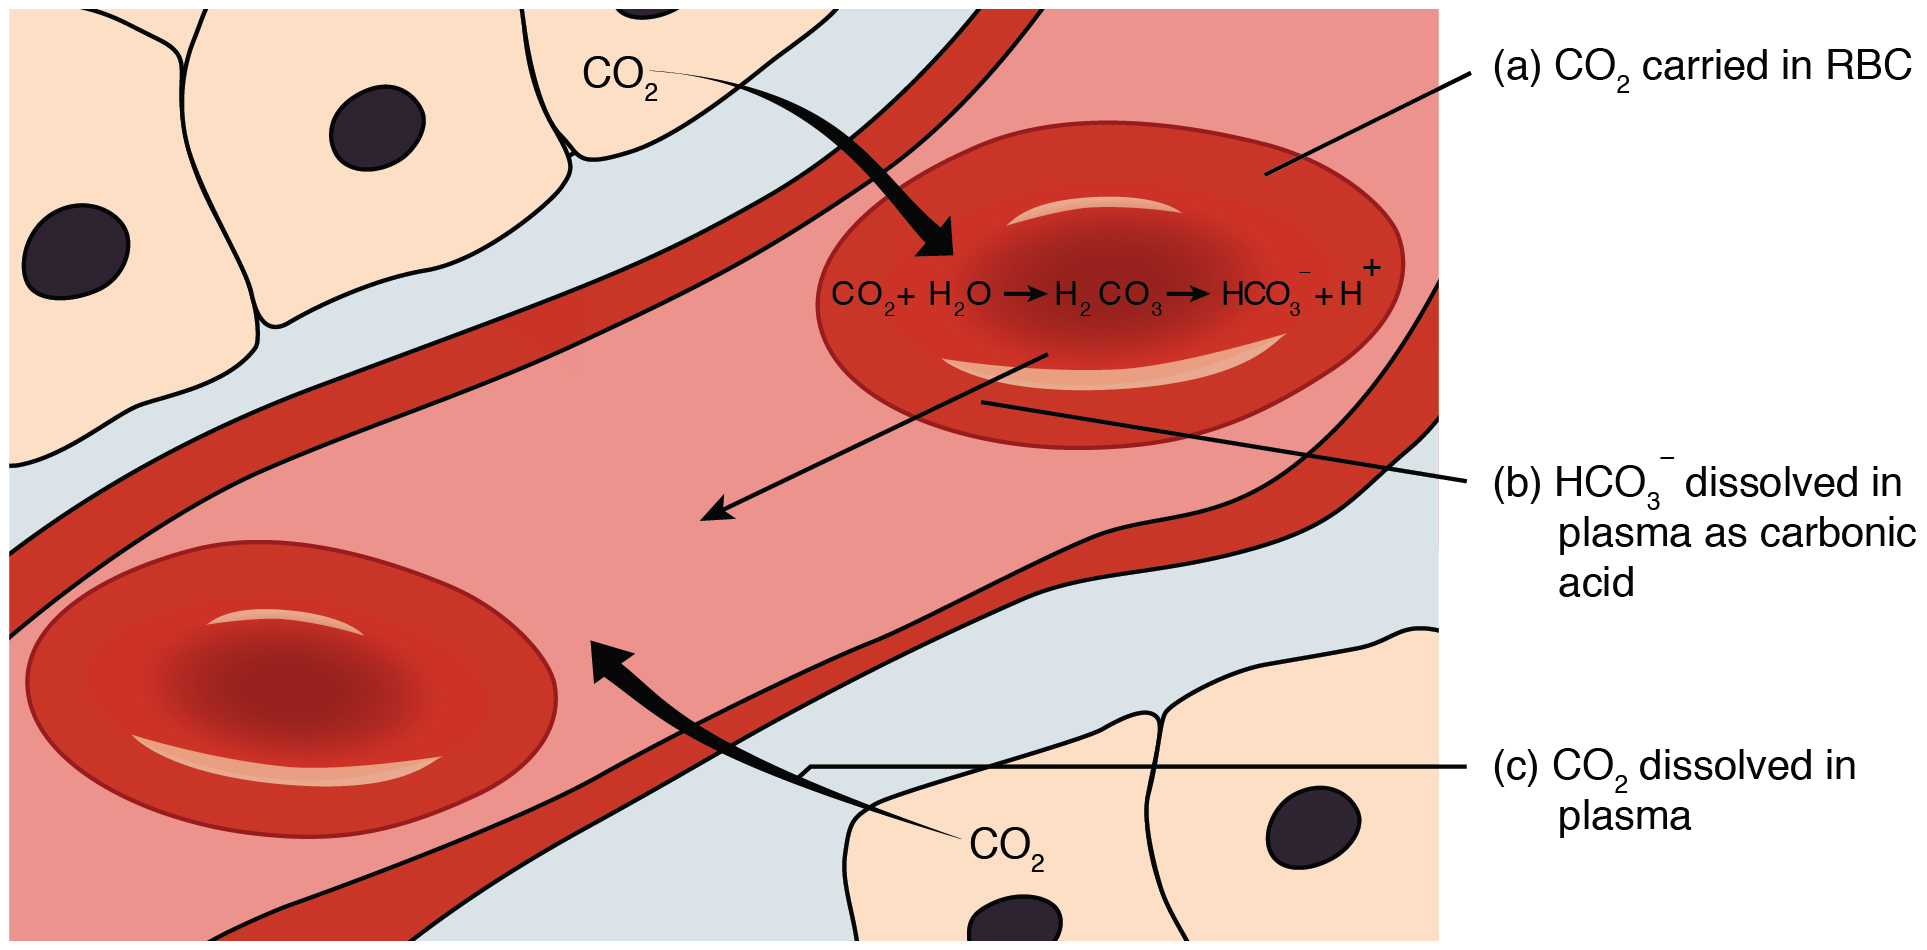 This figure shows how carbon dioxide is transported from the tissue to the red blood cell.